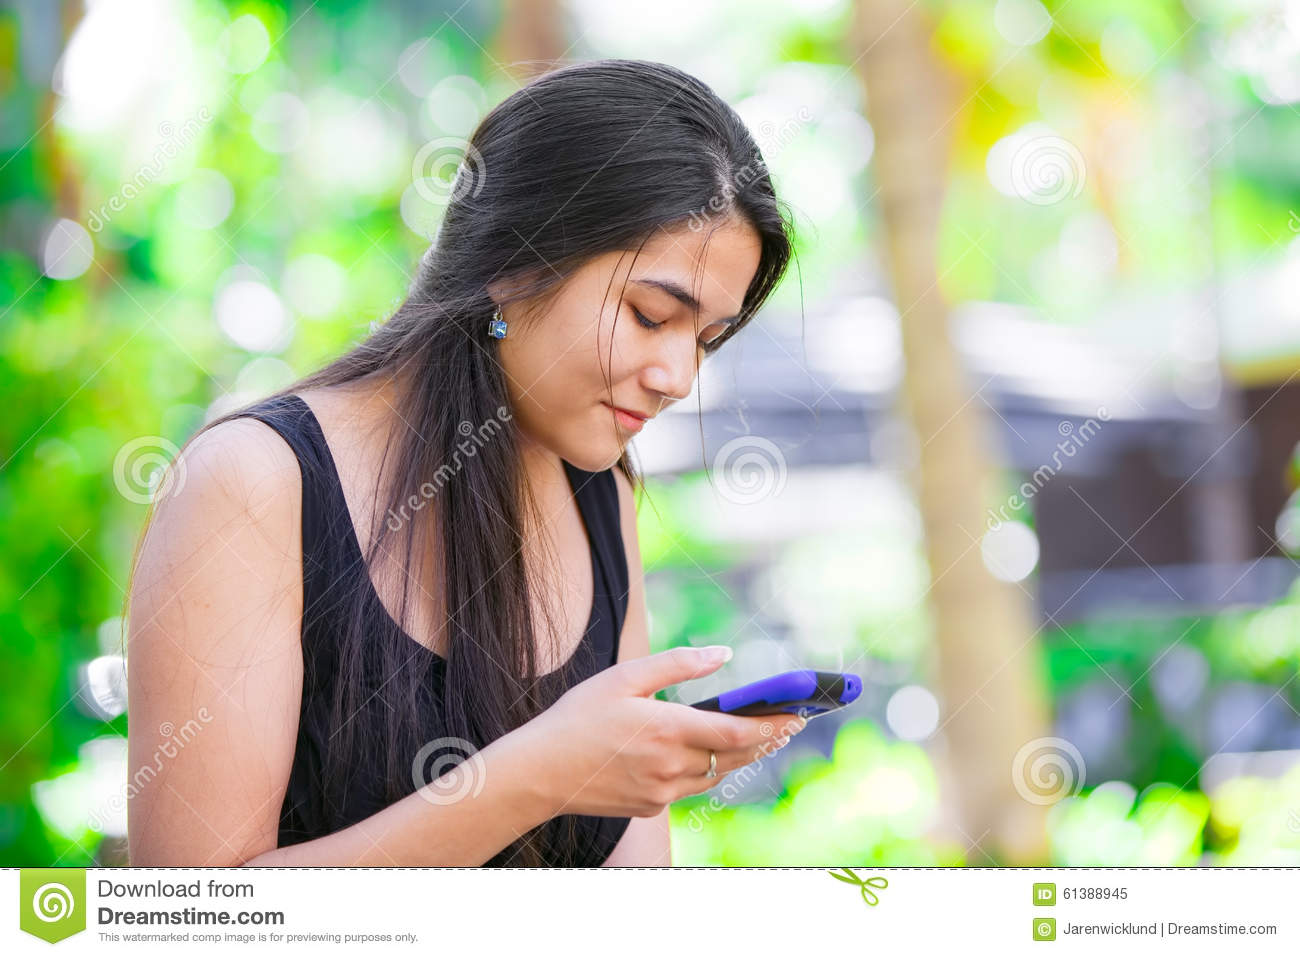 biracial teen girl talking on cell phone outdoors stock